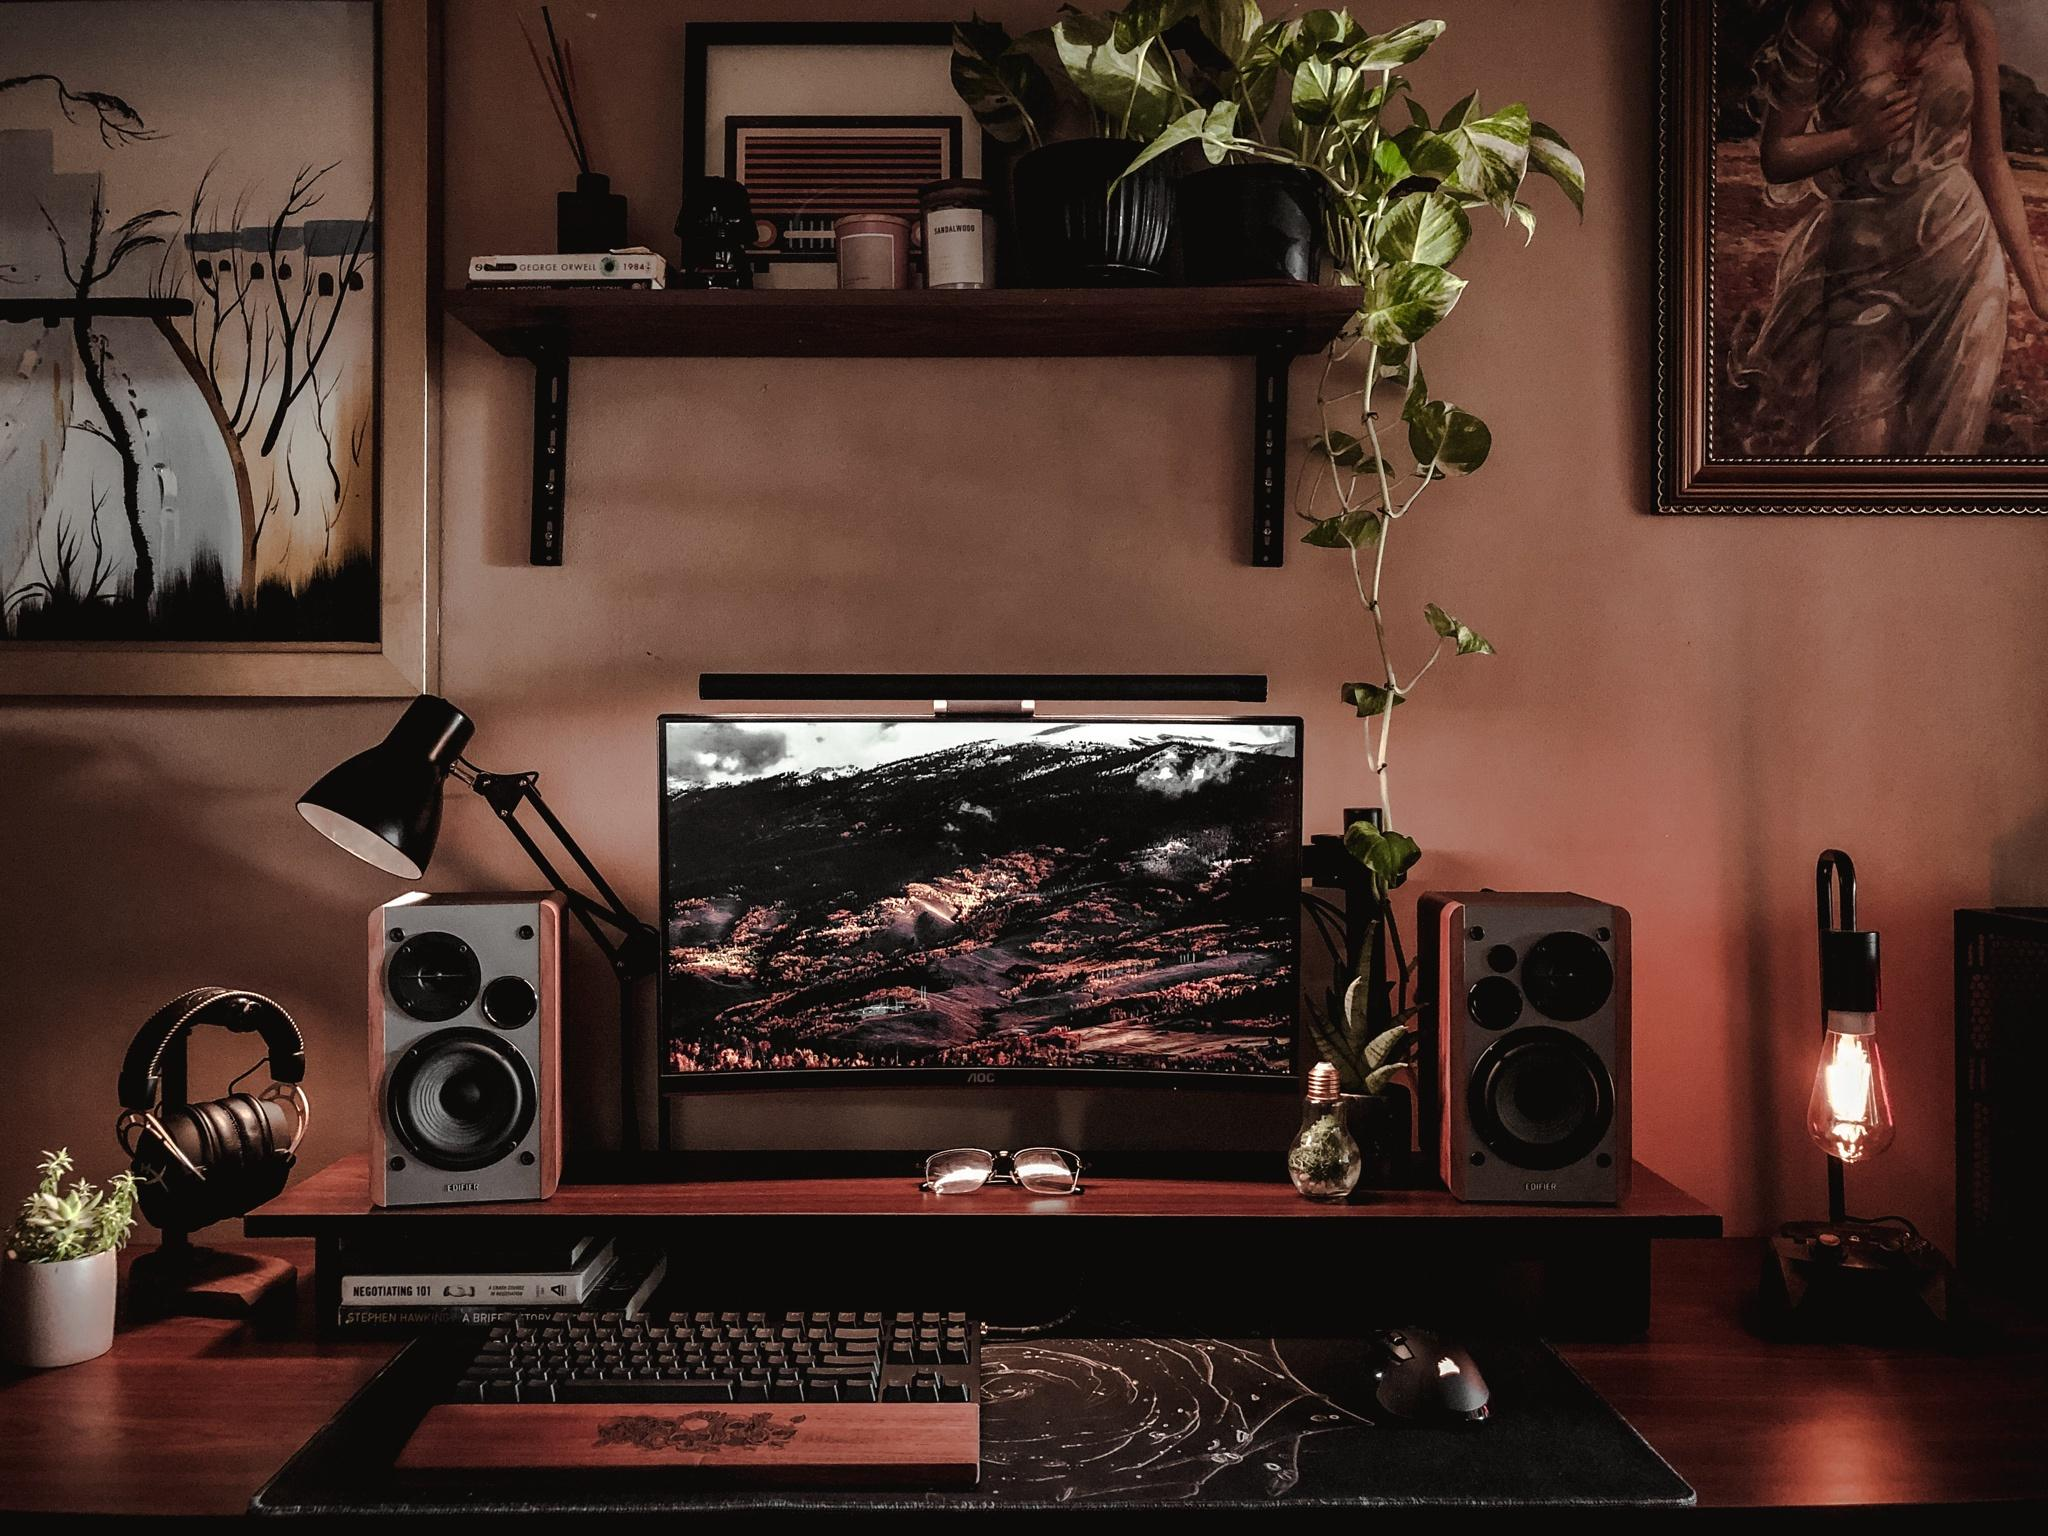 By using dark colours, Jason has created a relaxing ambience in his setup